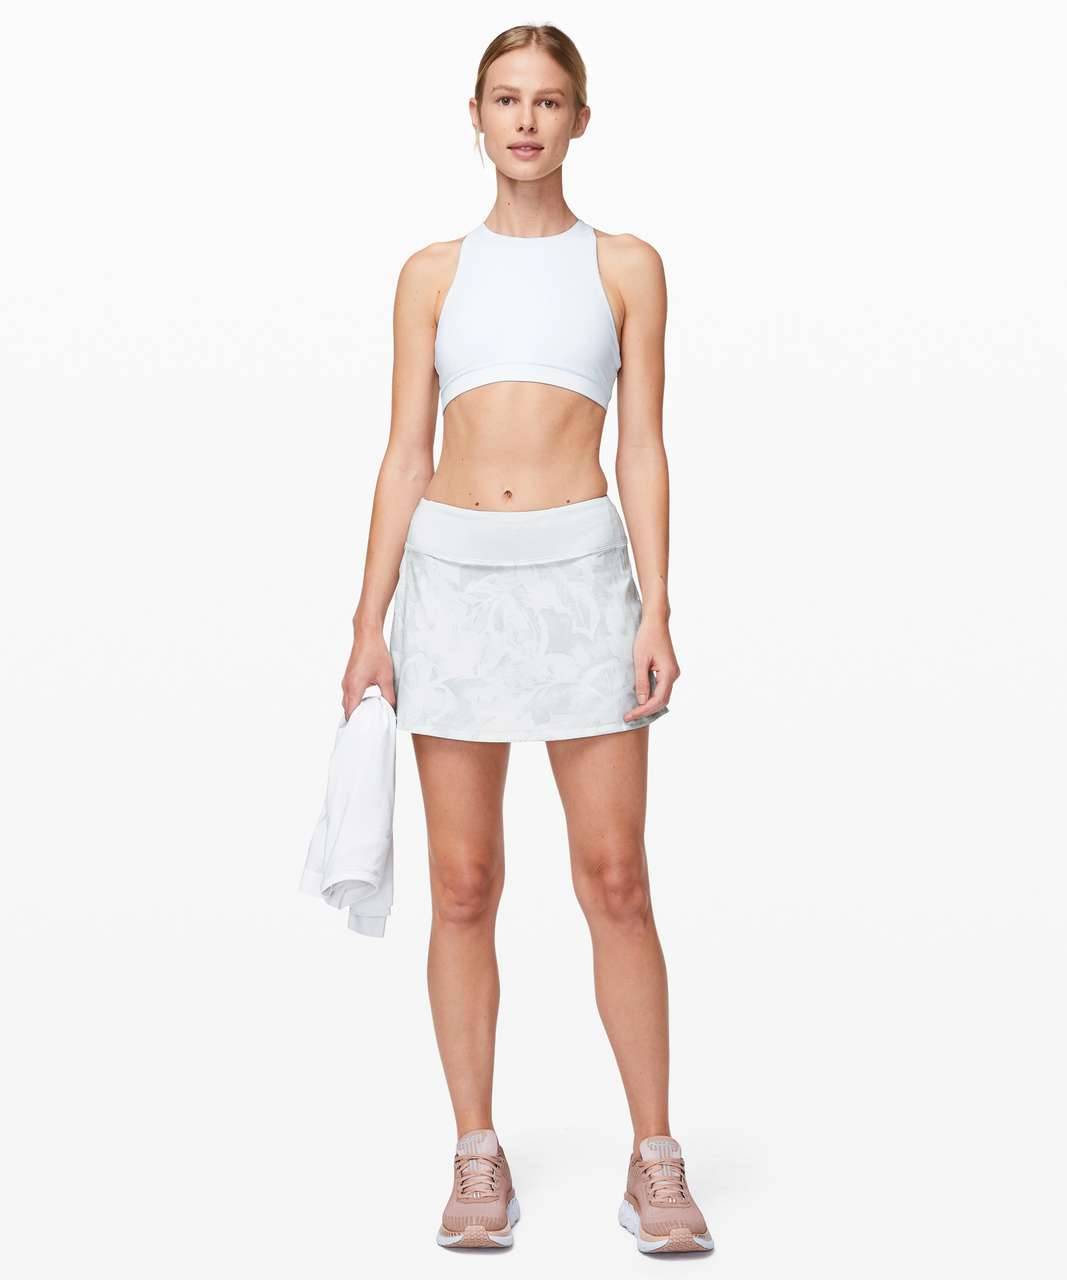 "Lululemon Pace Rival Skirt (Tall) *No Panels 15"" - Mini Tropical Shadow Starlight Multi / Alpine White"